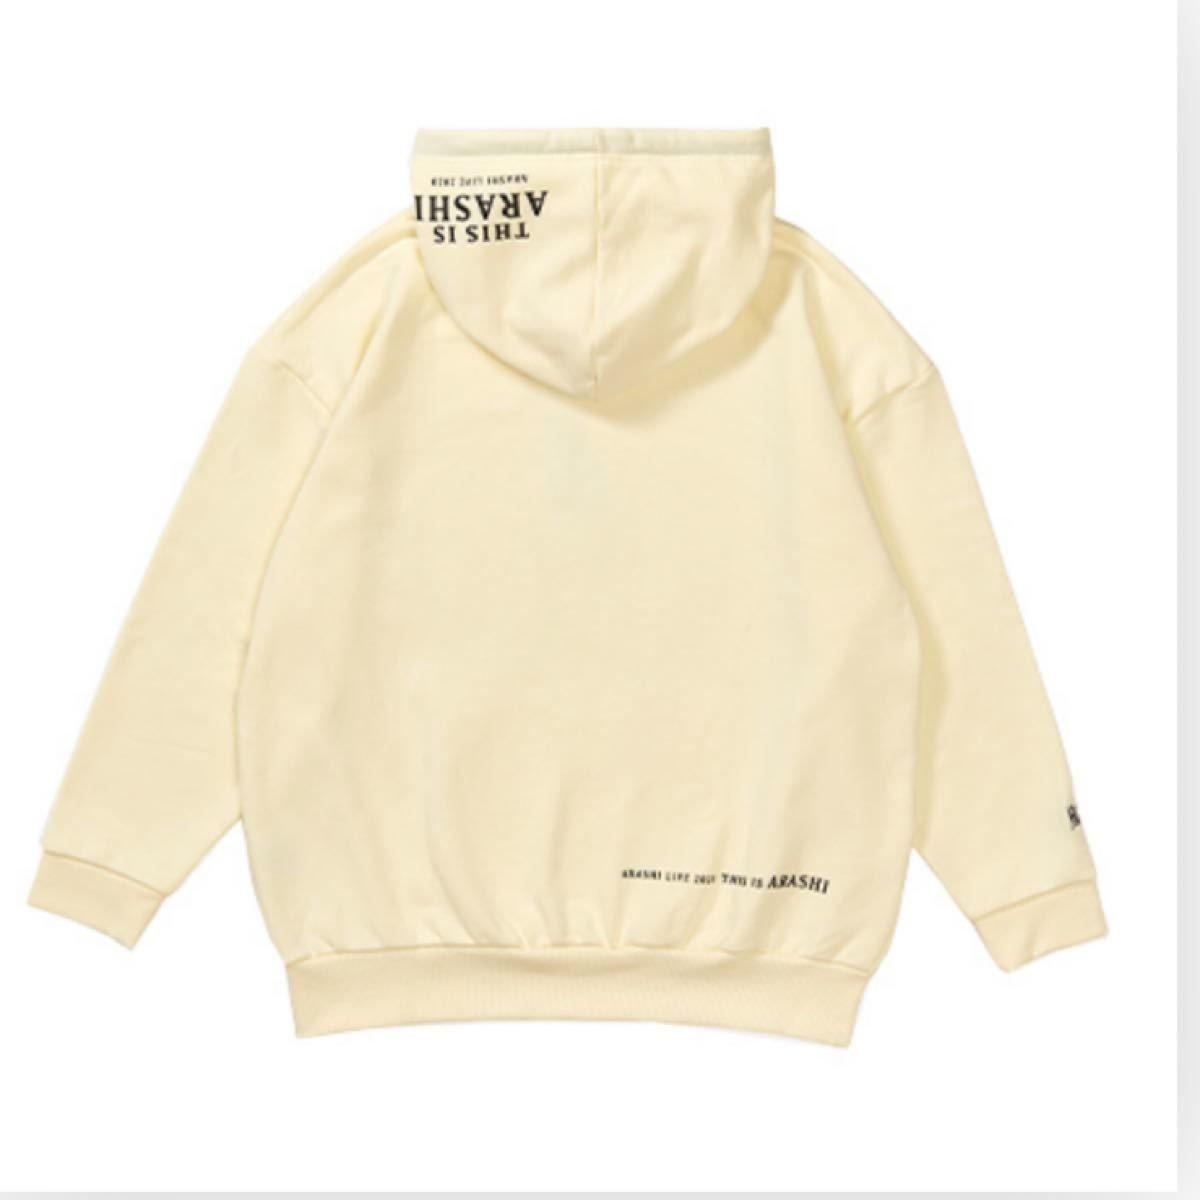 This is嵐公式パーカー☆新品